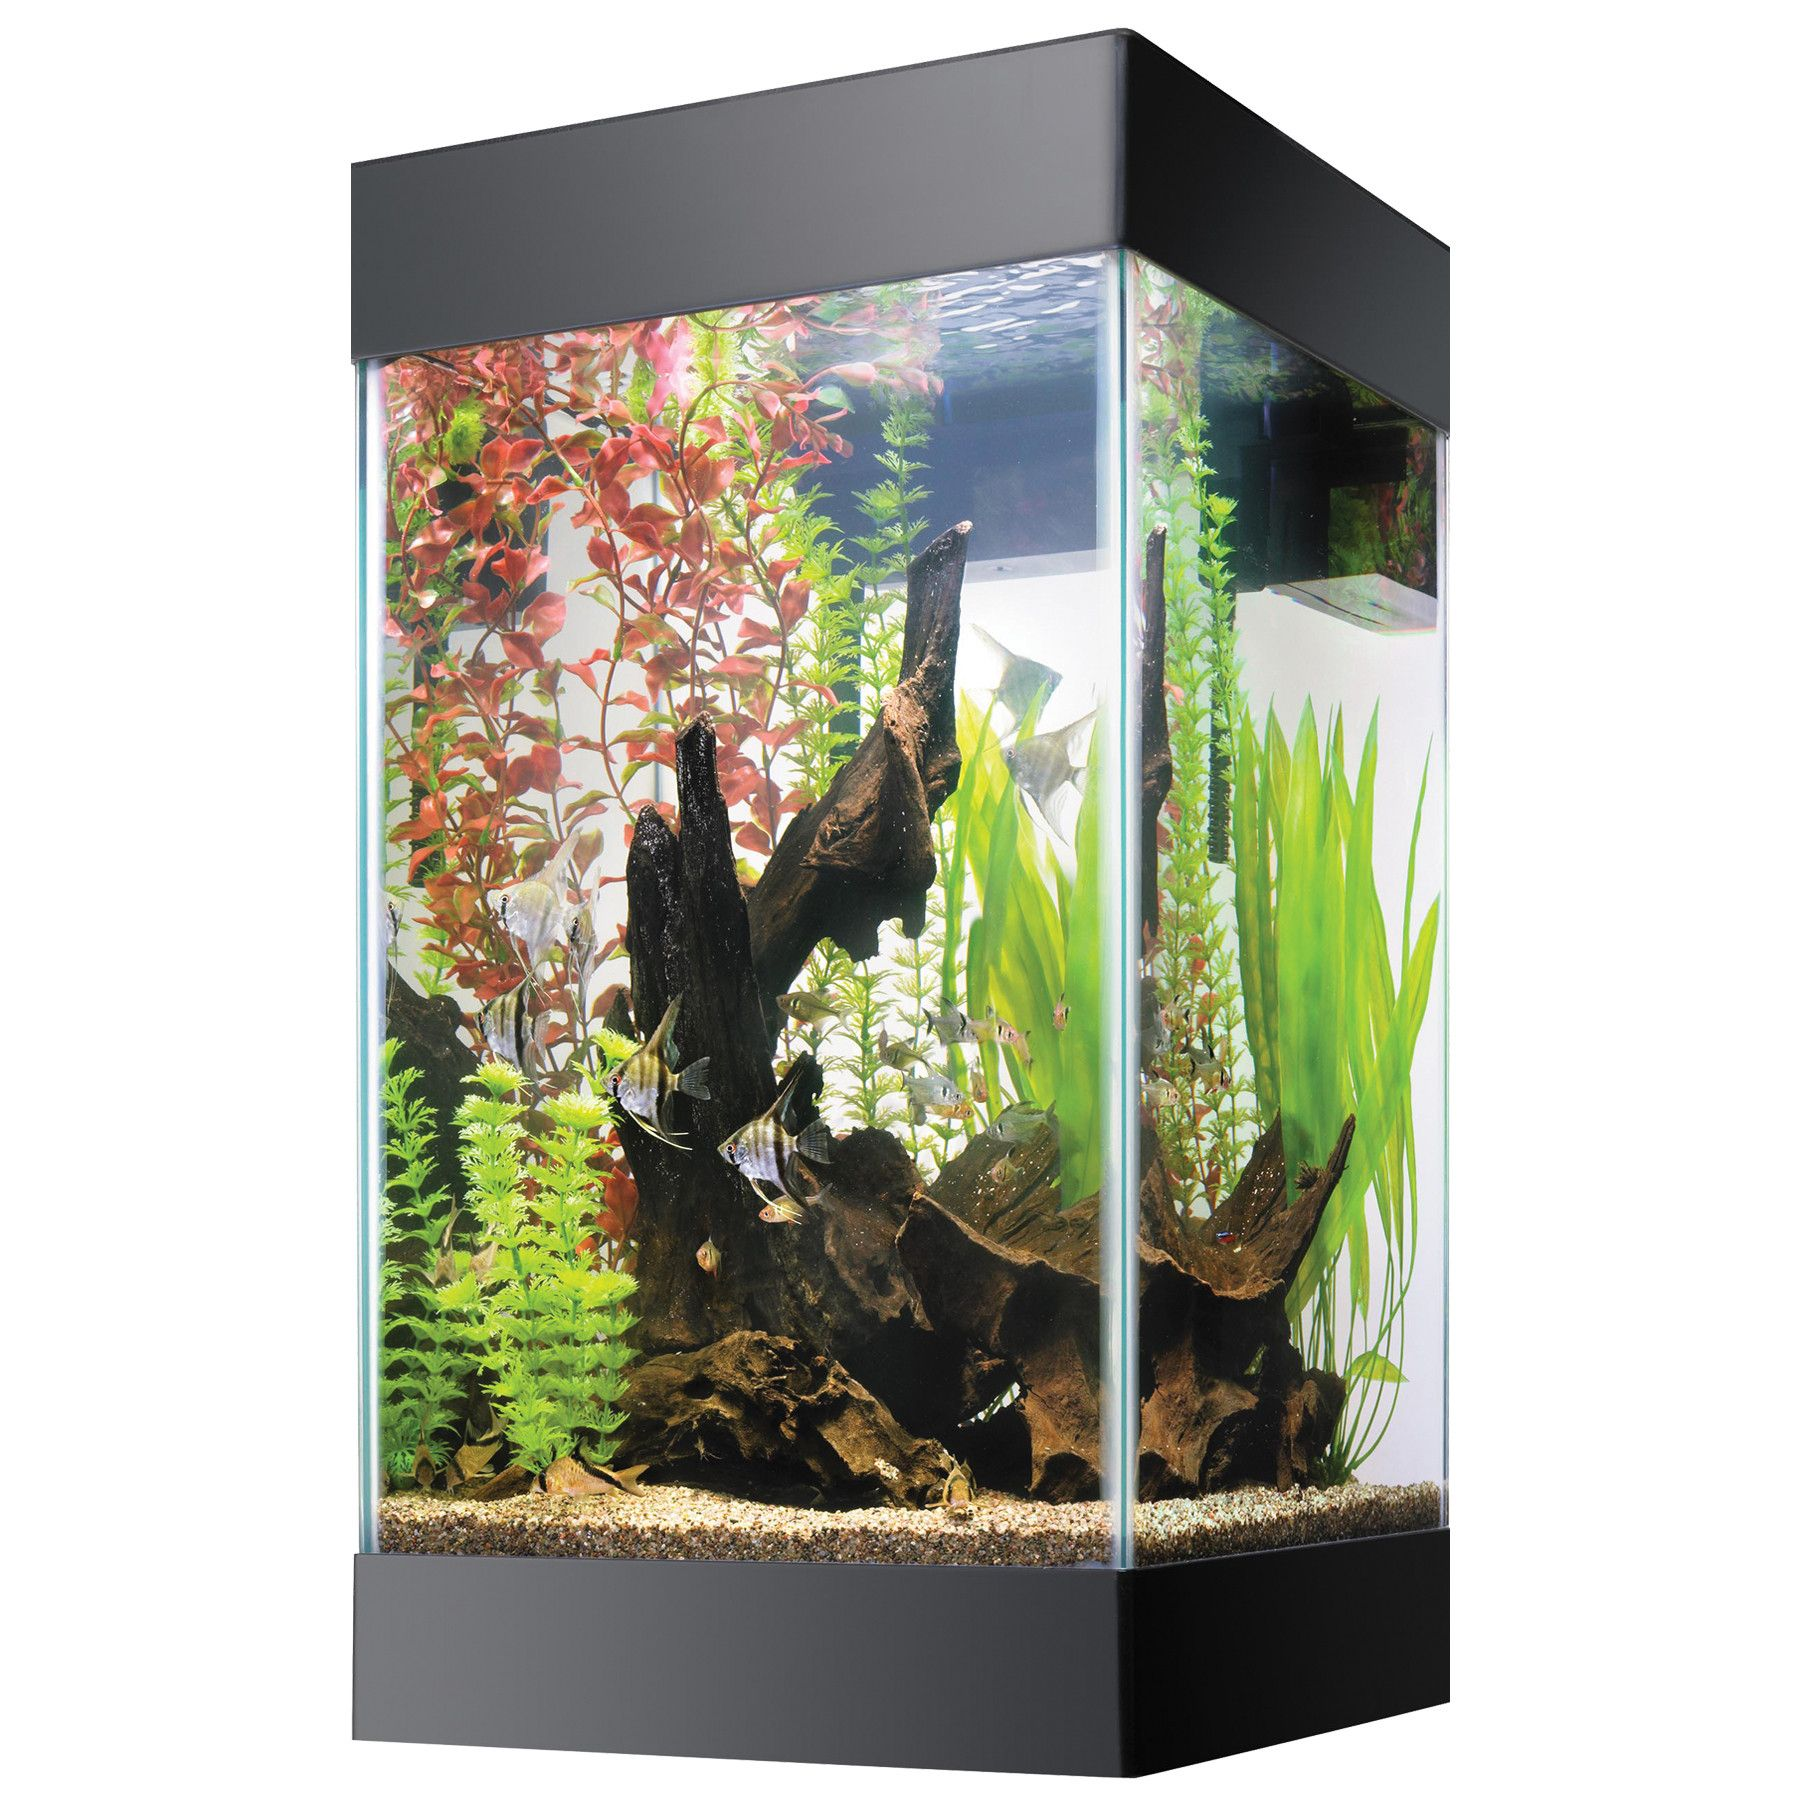 Aquarium fish tank for sale - Tanks